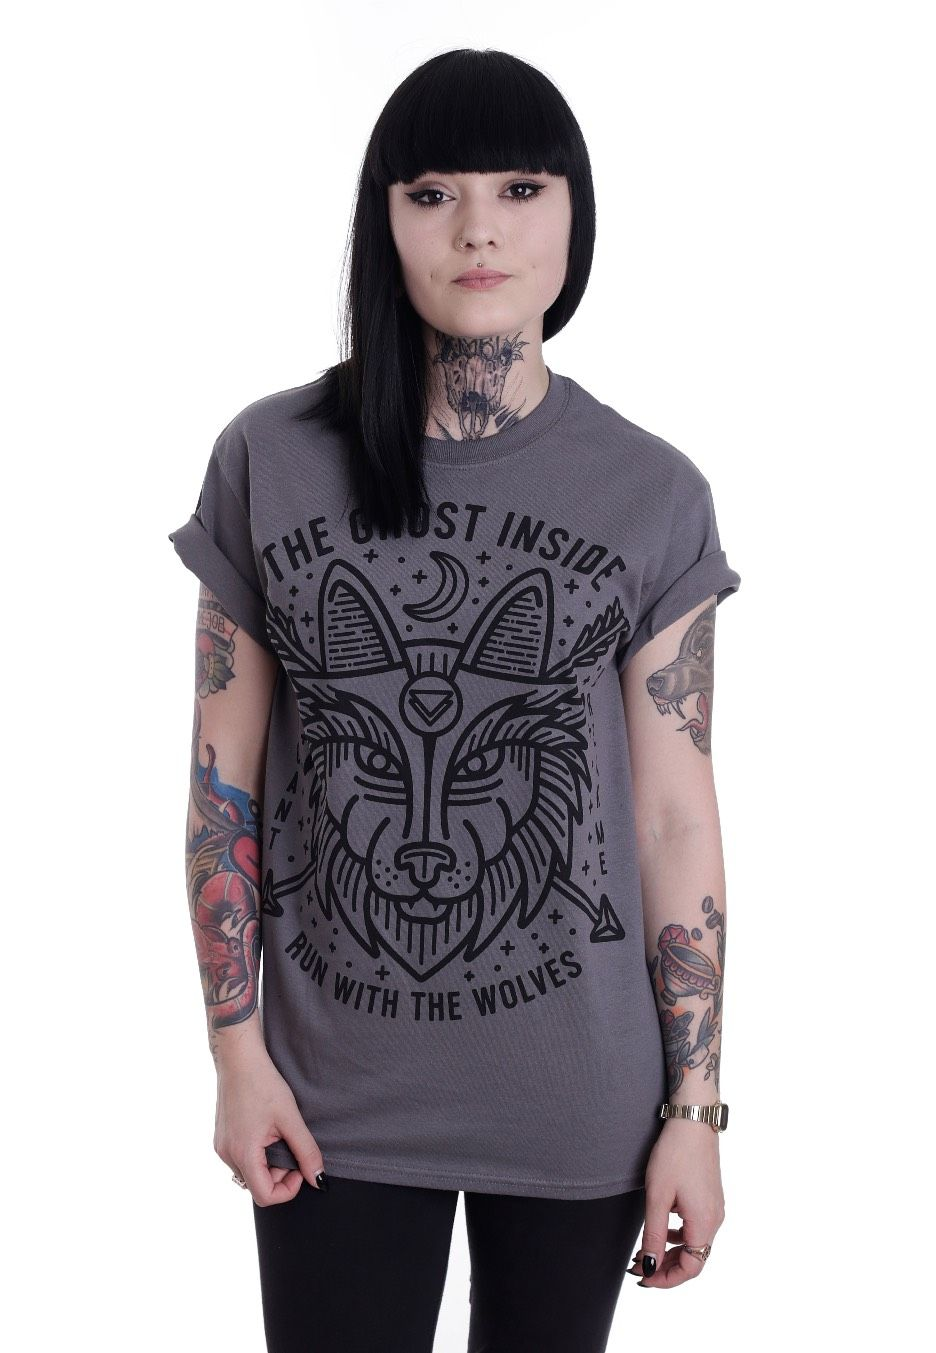 Checkout this out: The Ghost Inside - Run With The Wolves Charcoal - T-Shirt for 17,99€